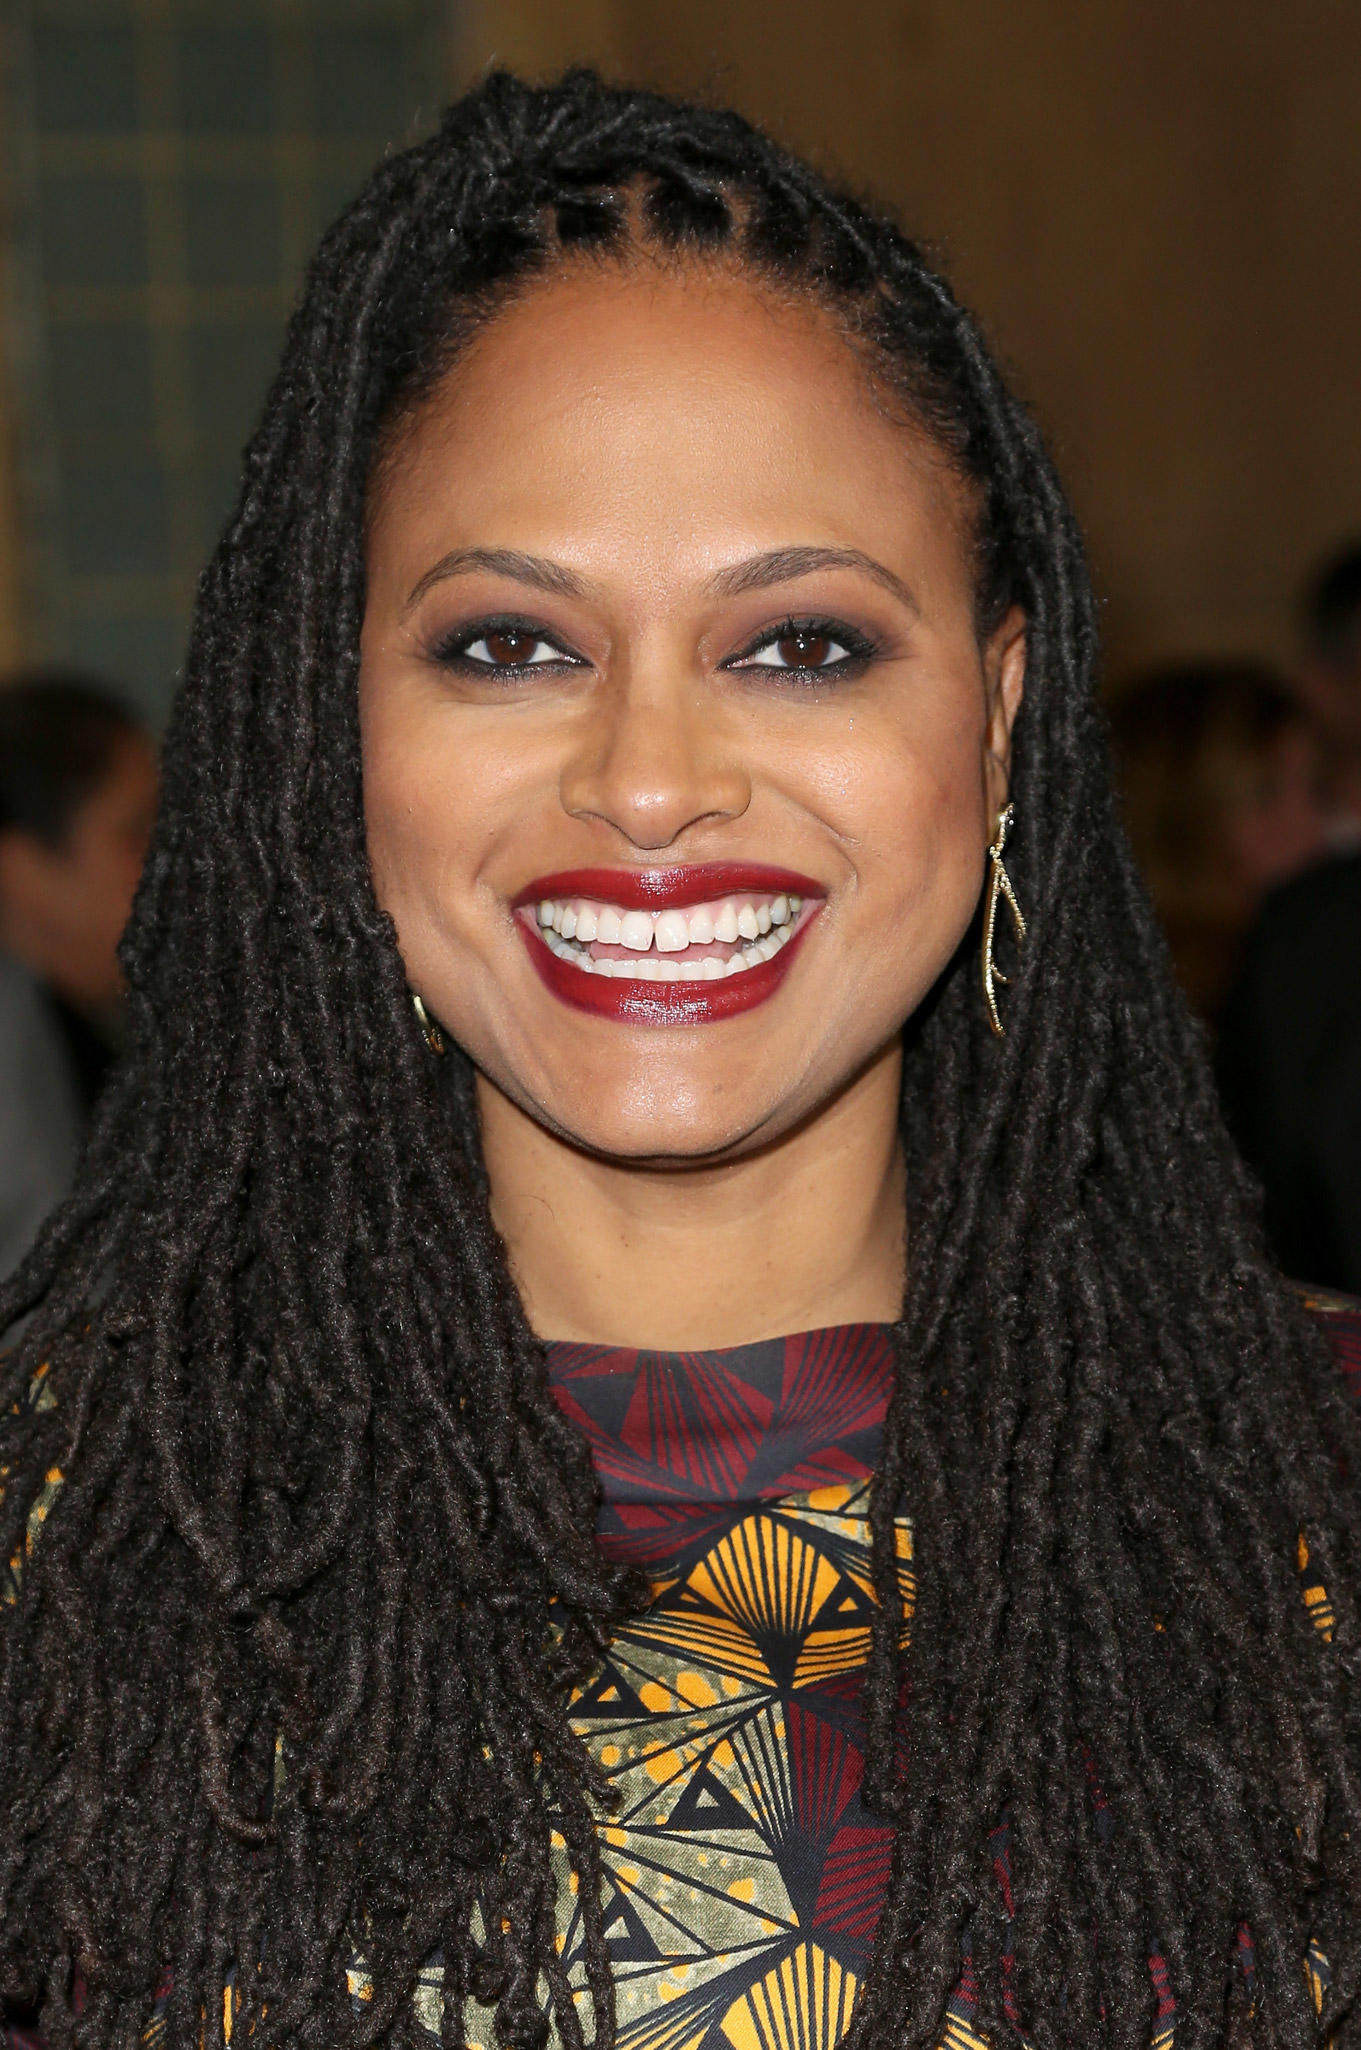 Ava DuVernay attends the 'Selma' first look during the AFI FEST 2014 at the Egyptian Theatre in Hollywood, California.